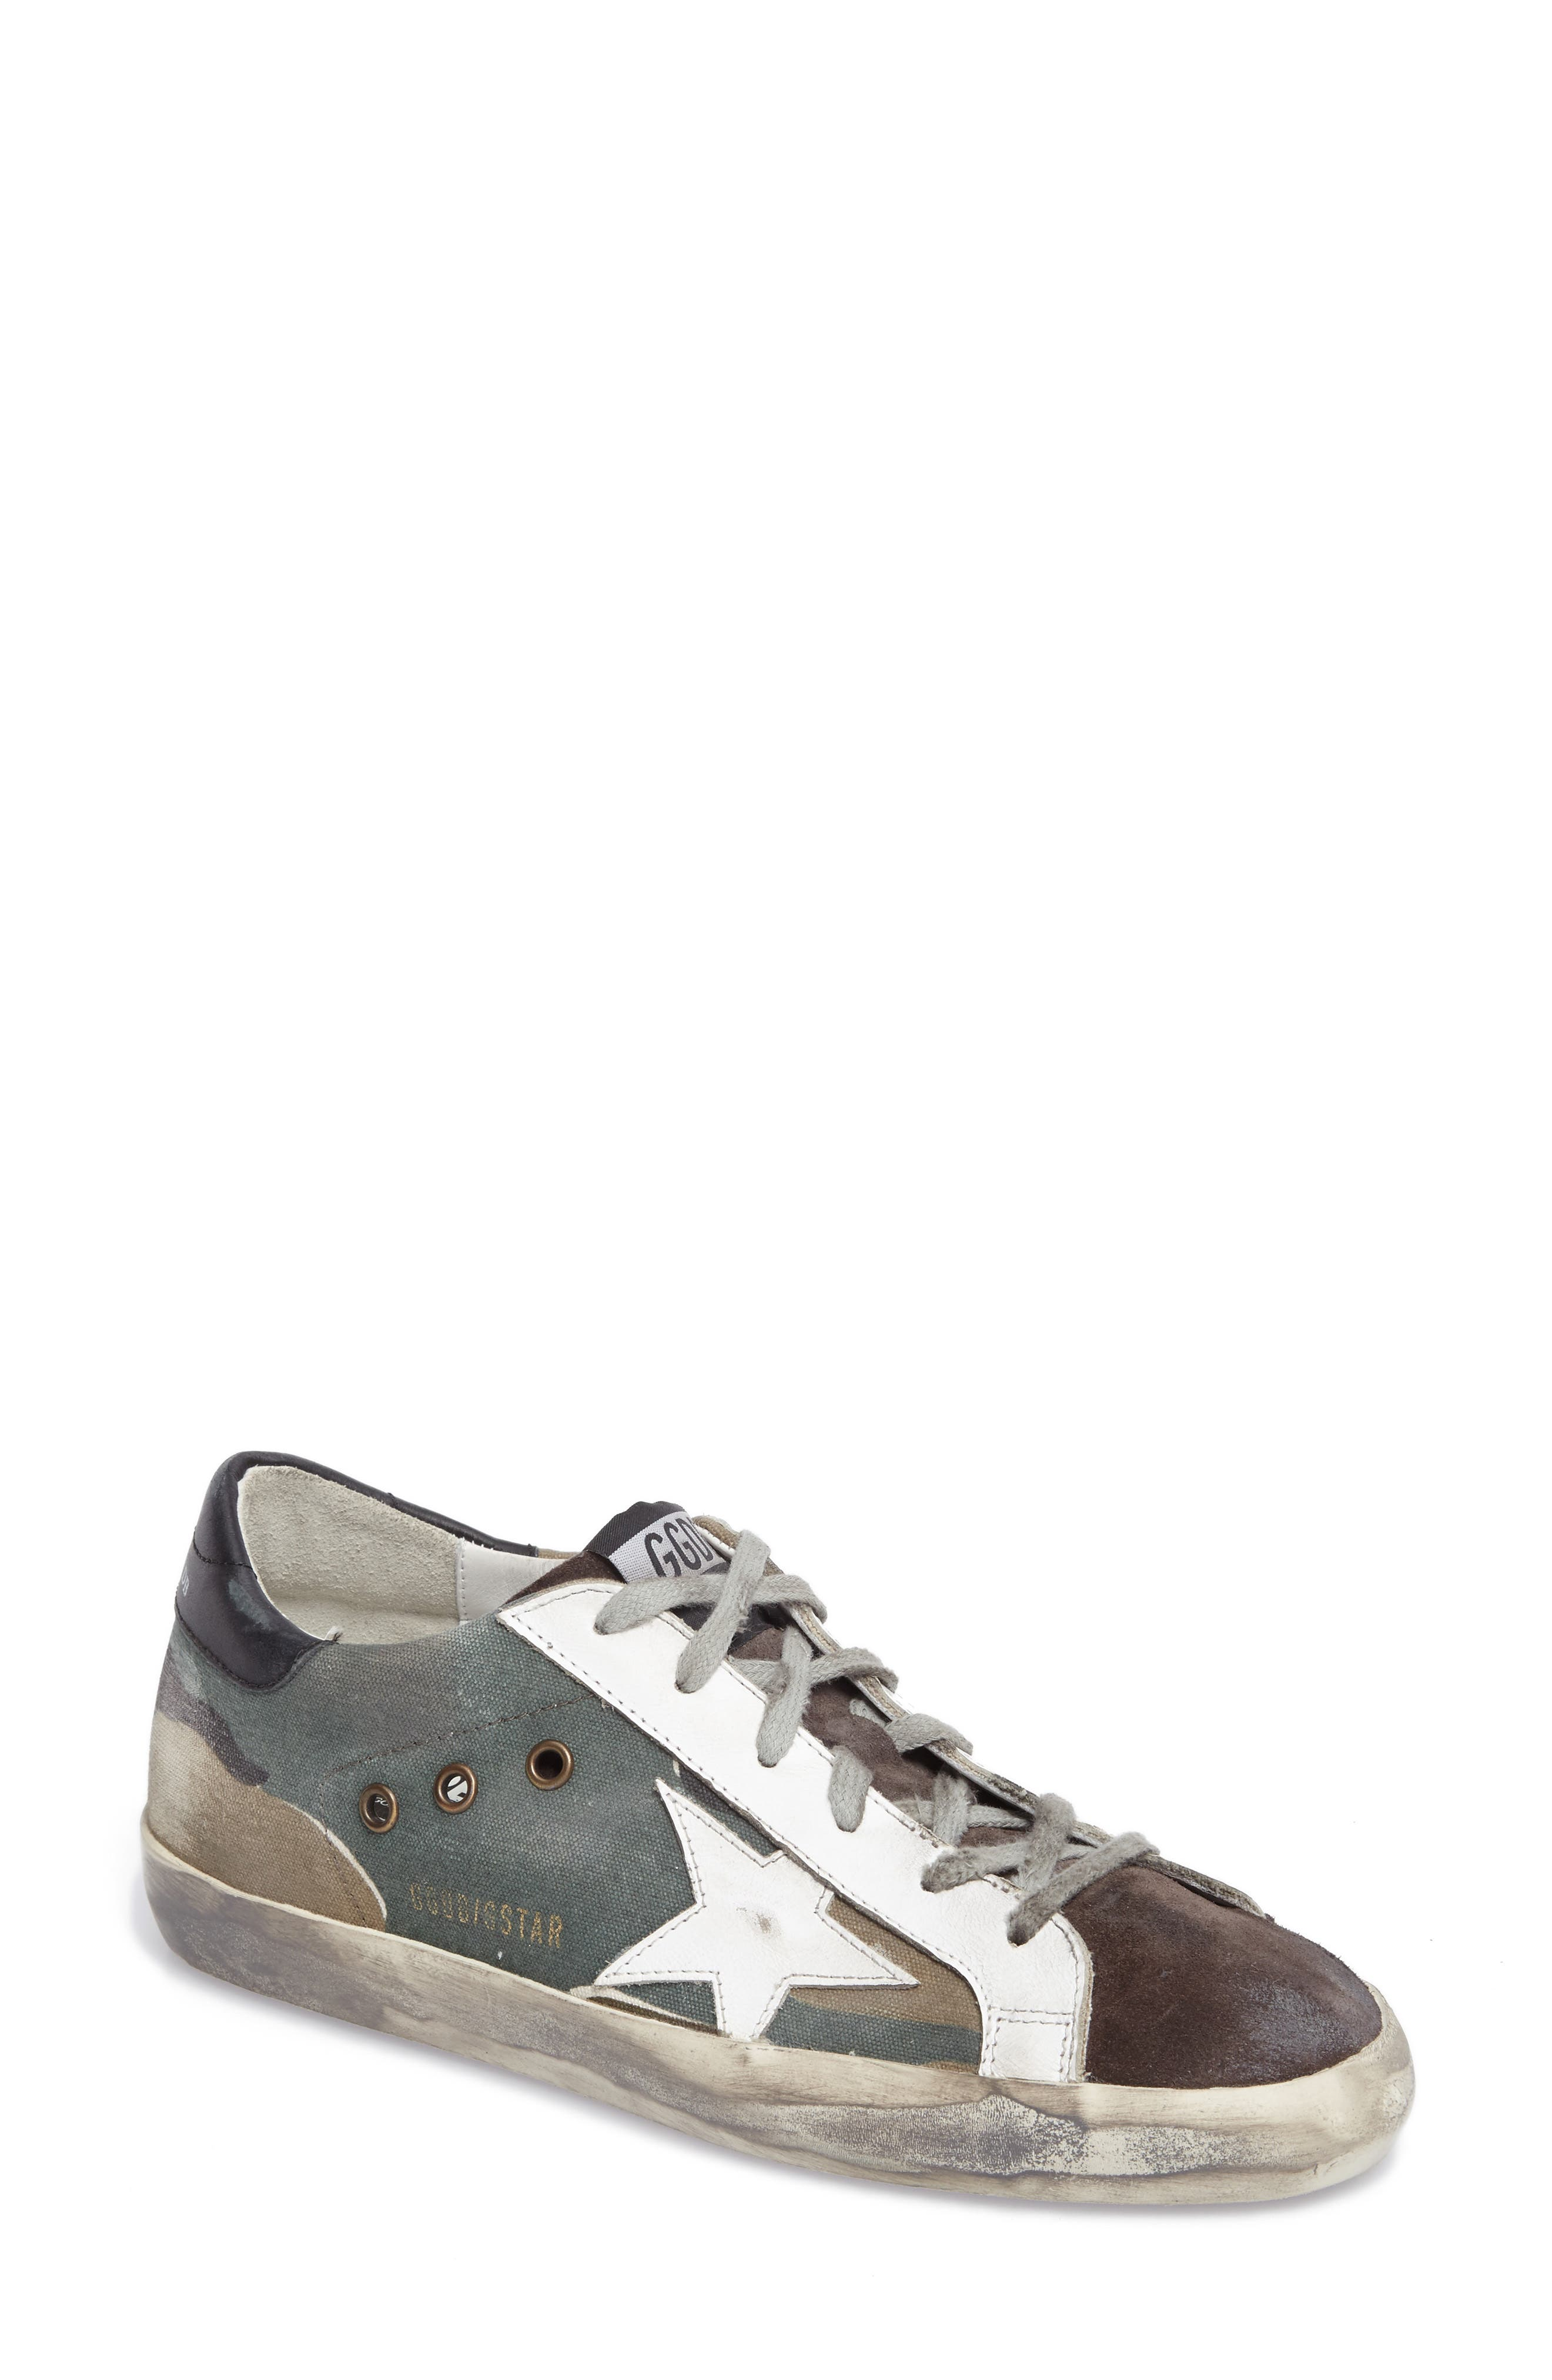 GOLDEN GOOSE,                             Superstar Low Top Sneaker,                             Main thumbnail 1, color,                             020